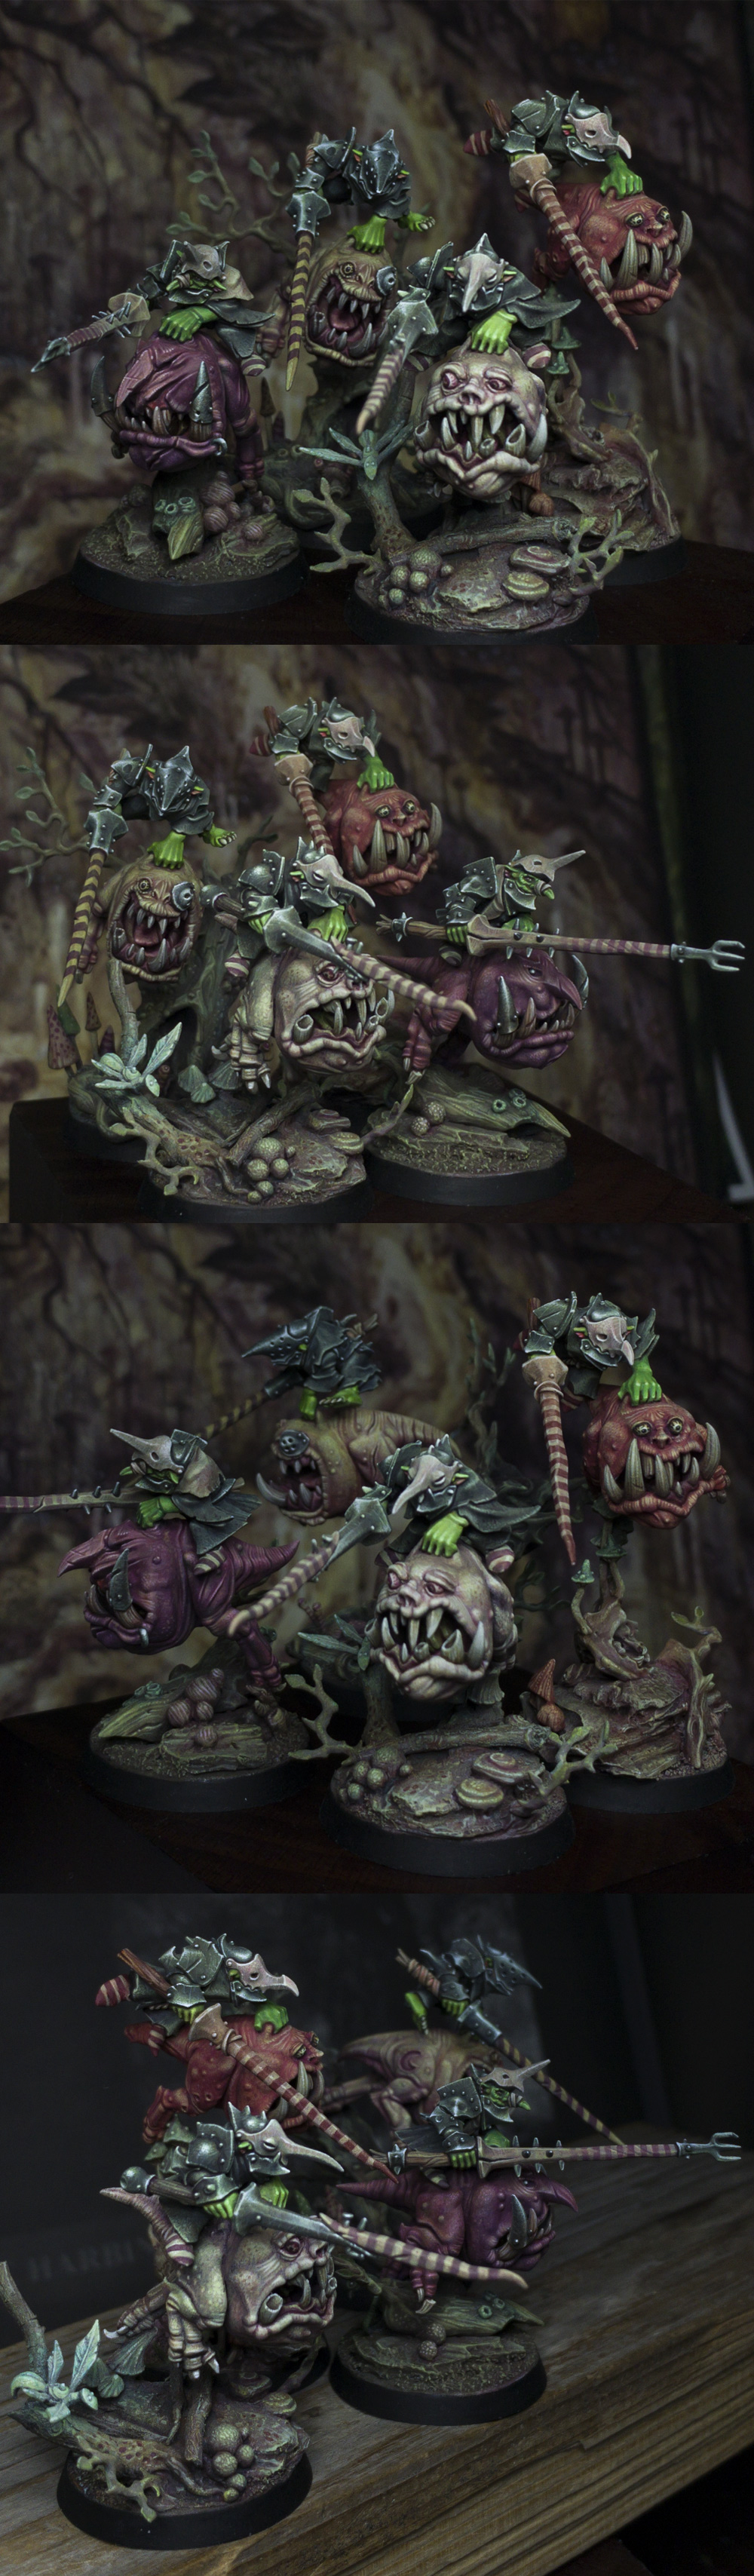 squig hoppers!